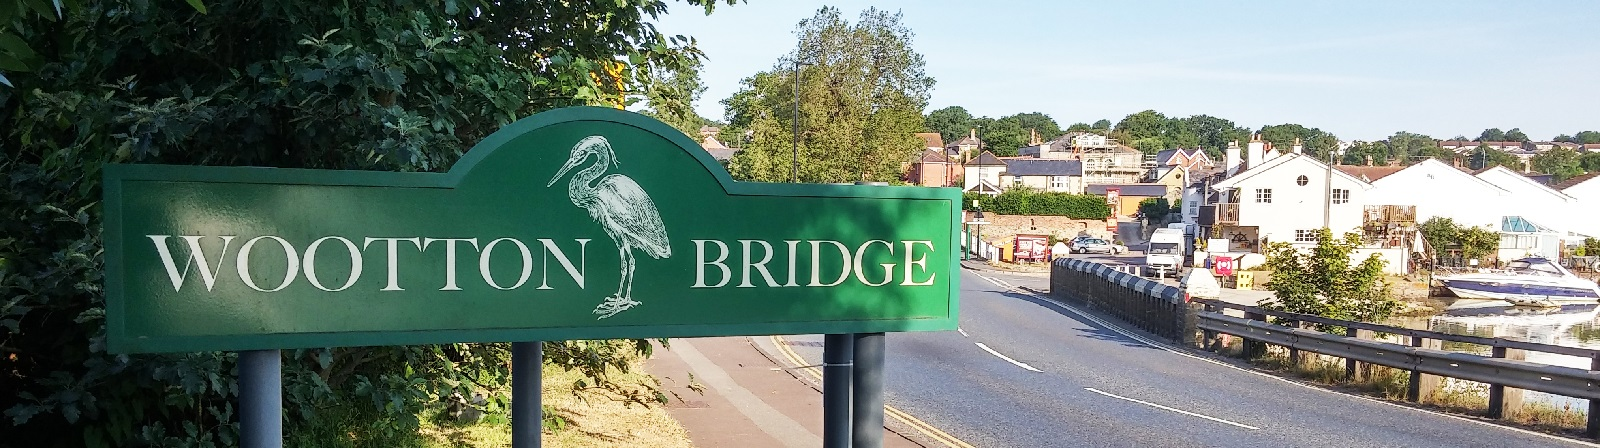 Wootton Bridge Parish Council, Isle of Wight